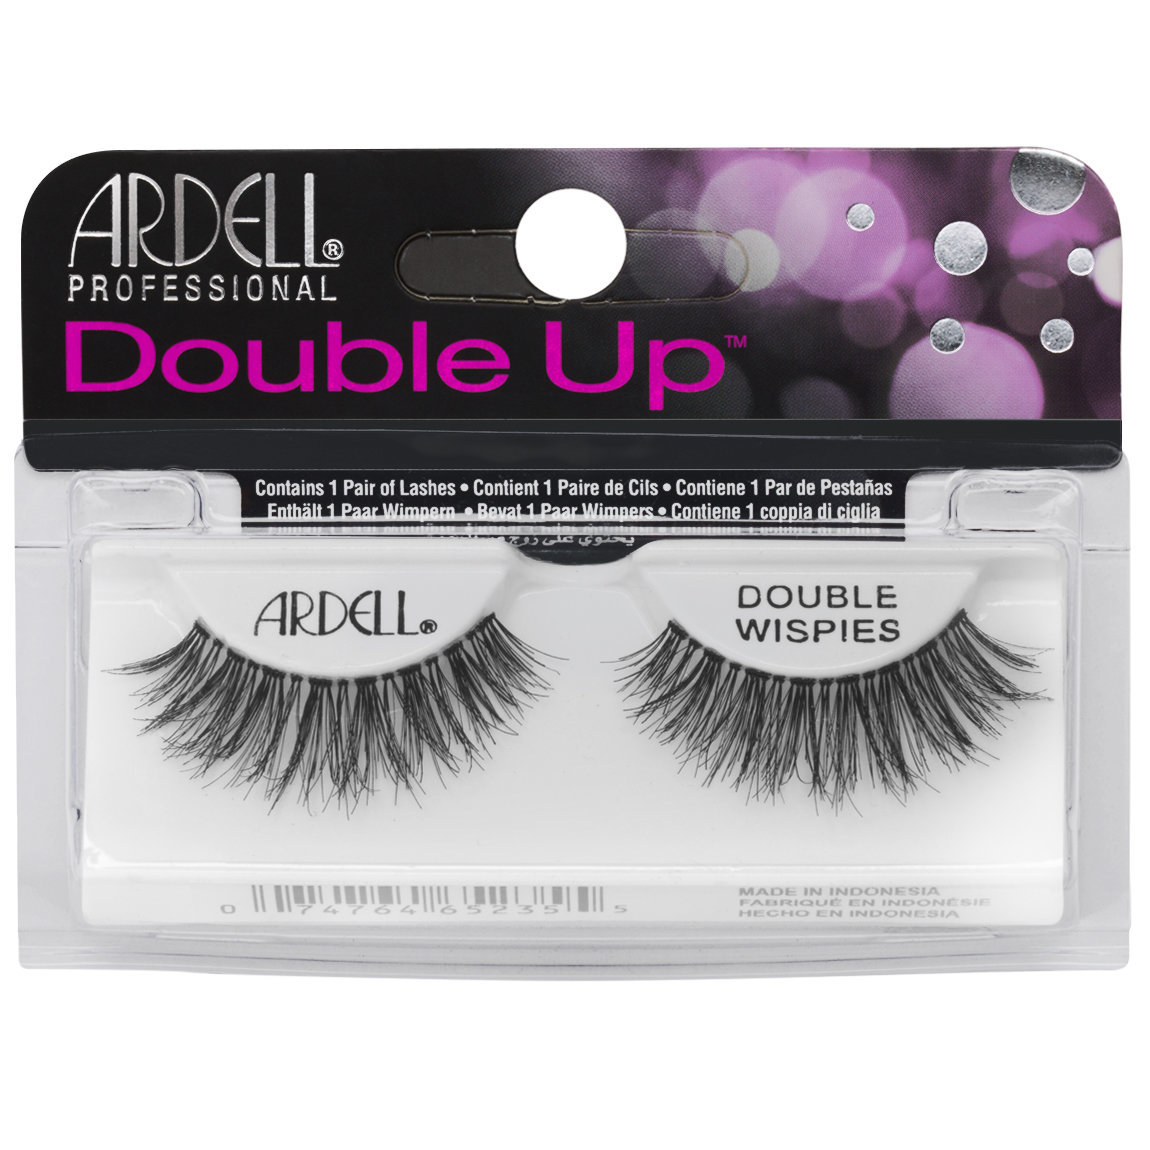 ba35fa5ca95 Ardell Double Up Lashes Wispies | Beautylish